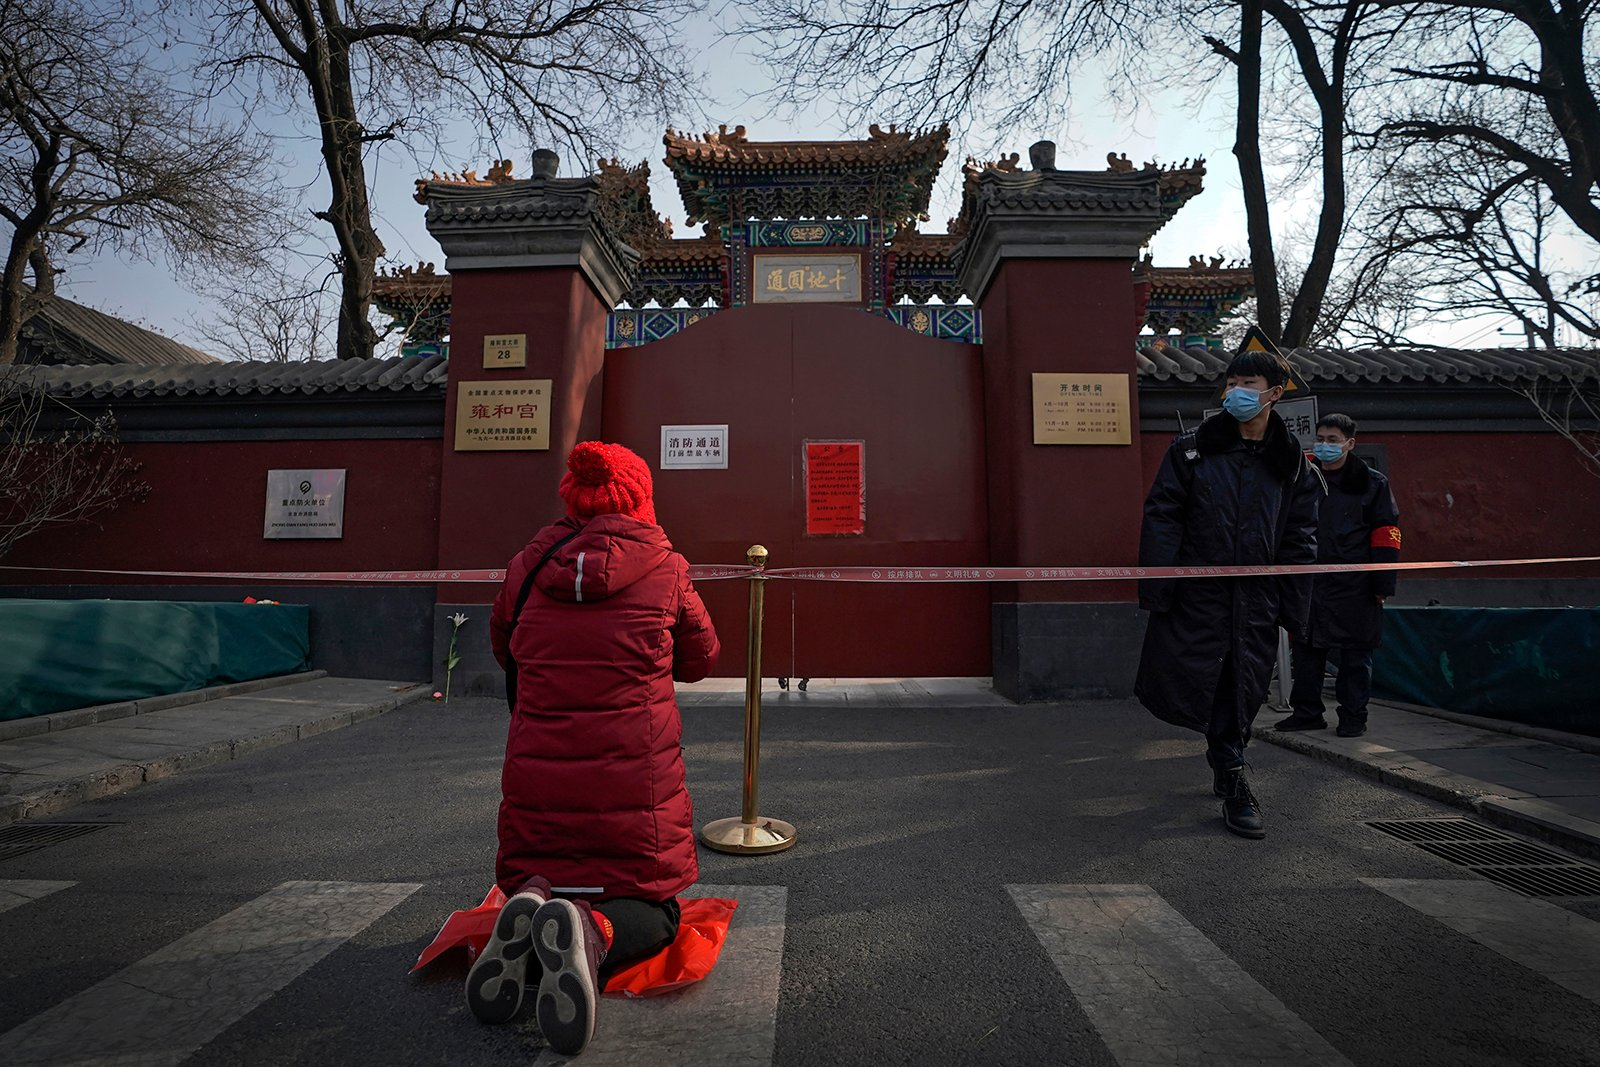 Security guards watch as a woman offers prayer near a barricade tape outside the closed Yonghegong Lama Temple, usually crowded with worshippers, during the first day of the Lunar New Year, in Beijing, China, on Friday, Feb. 12, 2021. Festivities for the holiday, normally East Asia's busiest tourism season, are muted after China, Vietnam, Taiwan and other governments tightened travel curbs and urged the public to avoid big gatherings following renewed virus outbreaks. (AP Photo/Andy Wong)